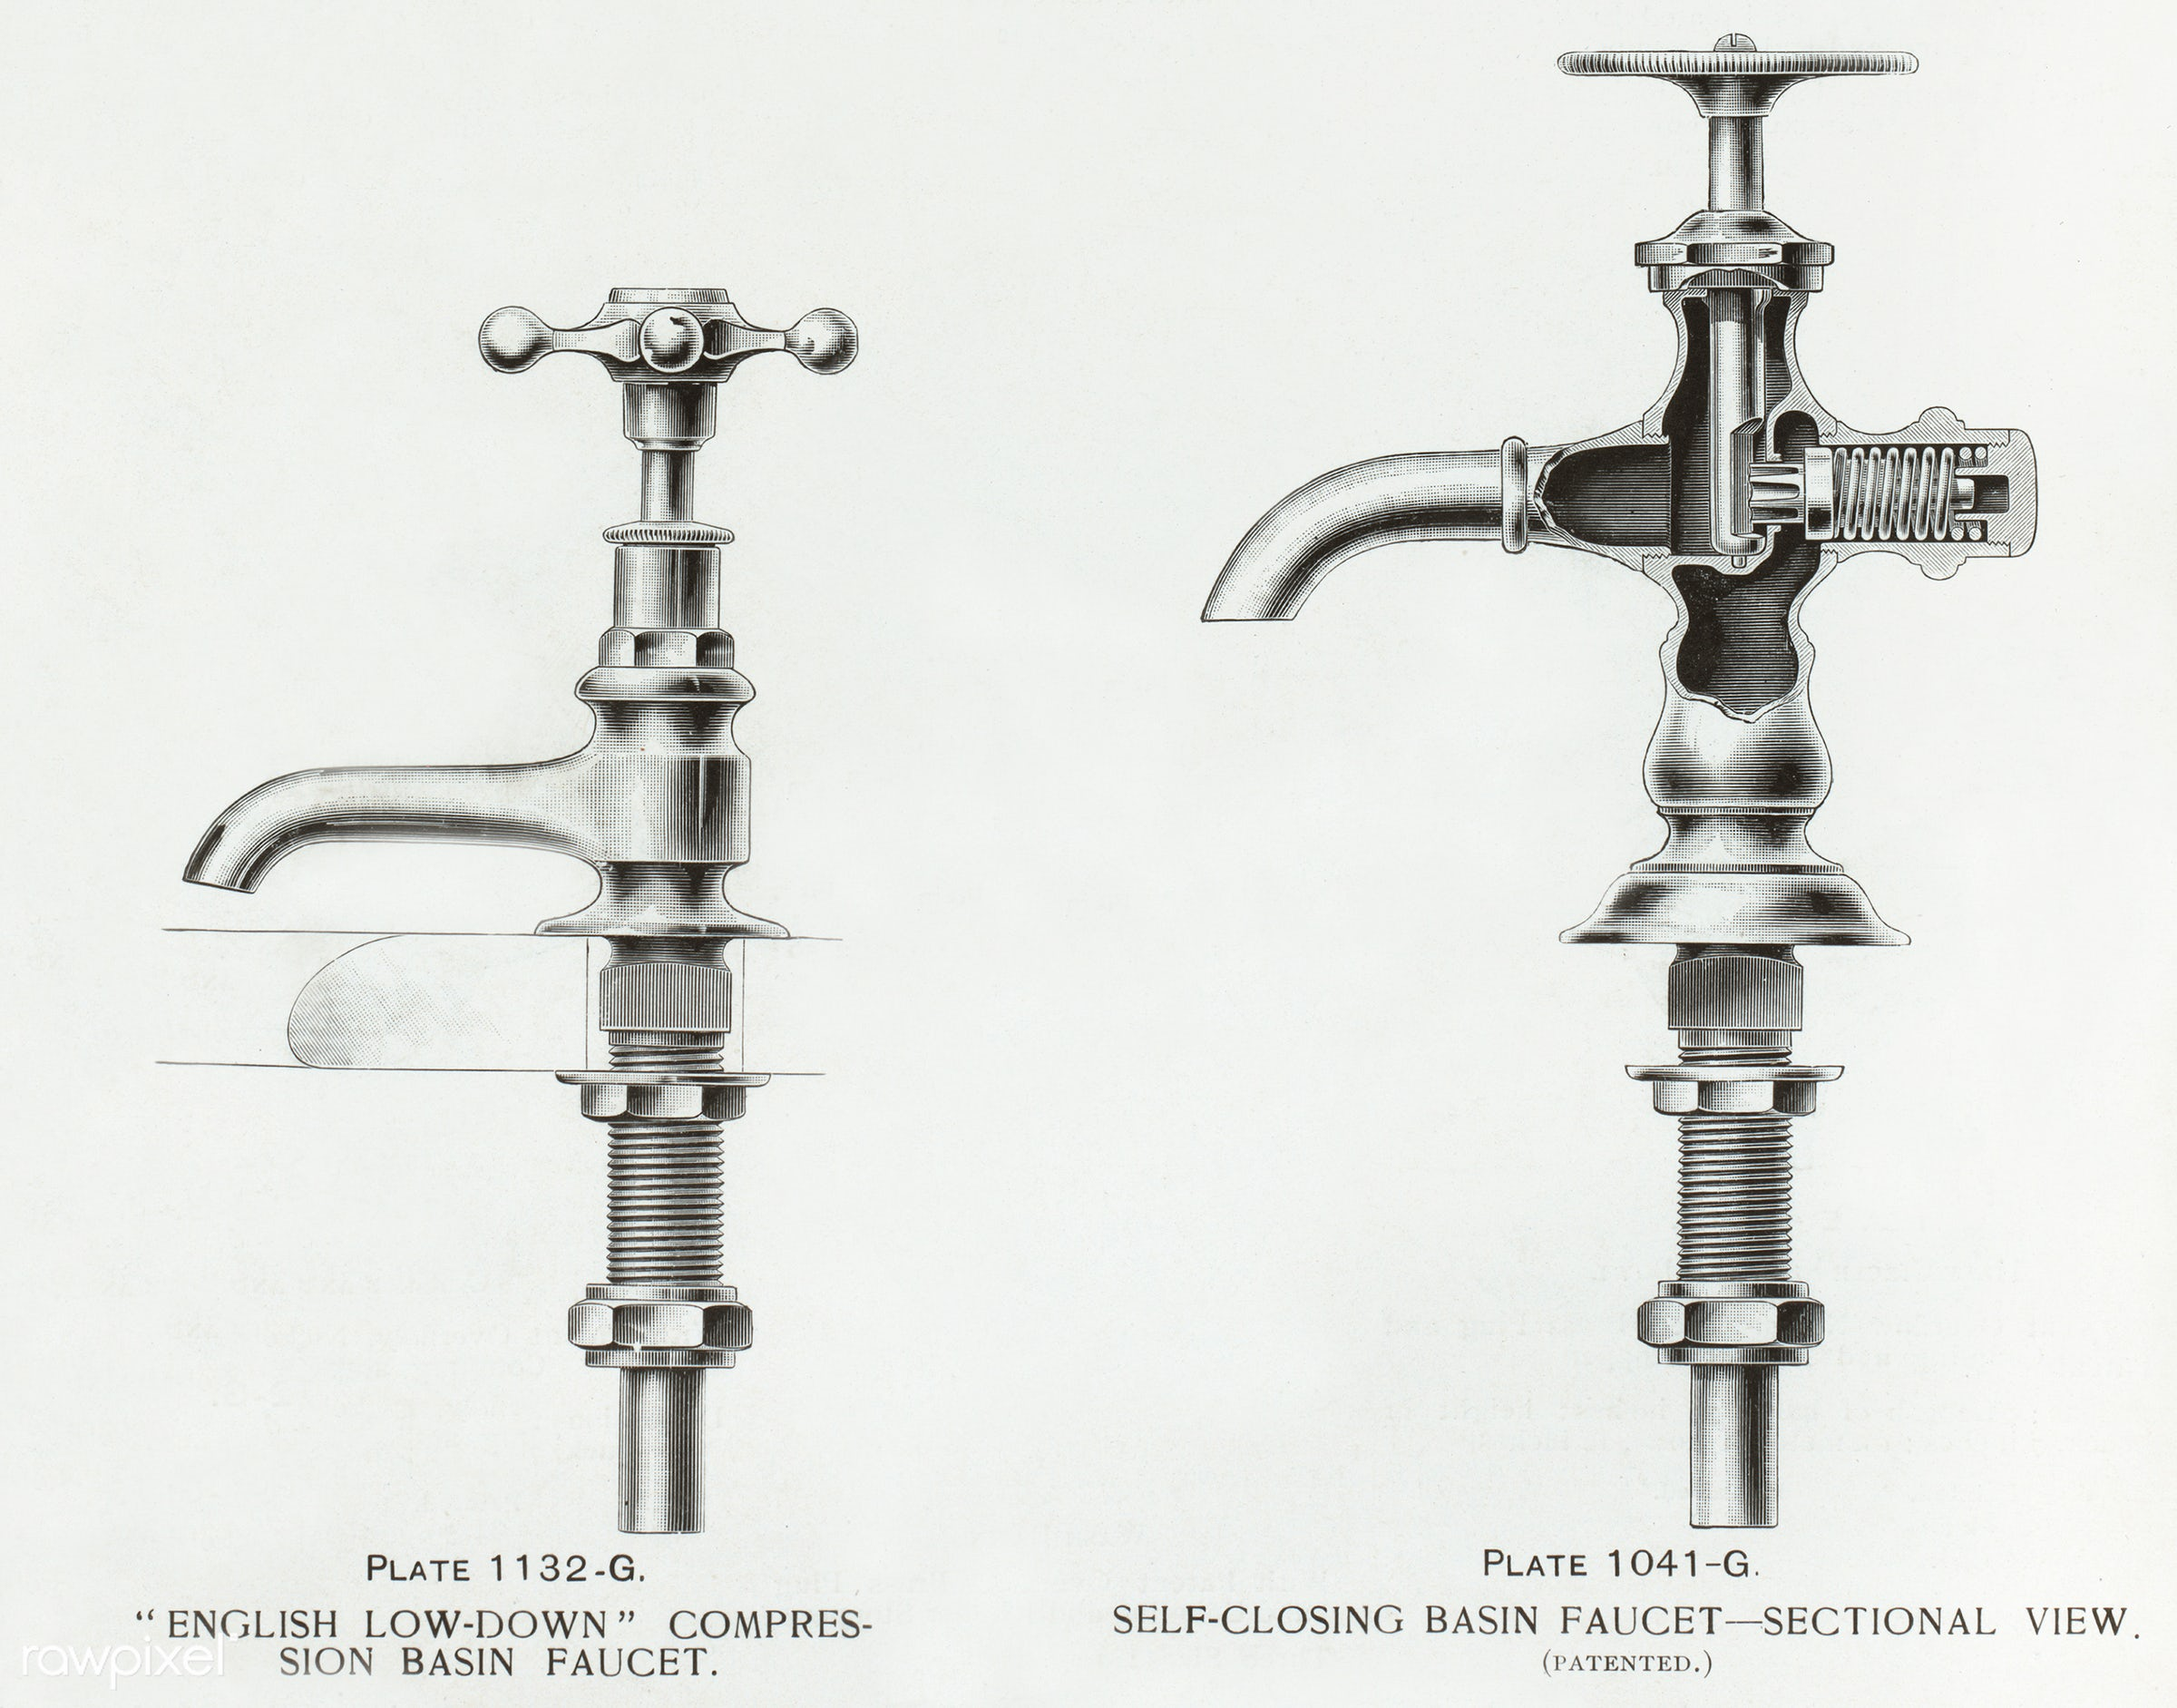 Faucet catalogue published in 1877-1893 by J.L. Mott Iron Works - antique, artwork, basin faucets, cc0, creative common 0,...